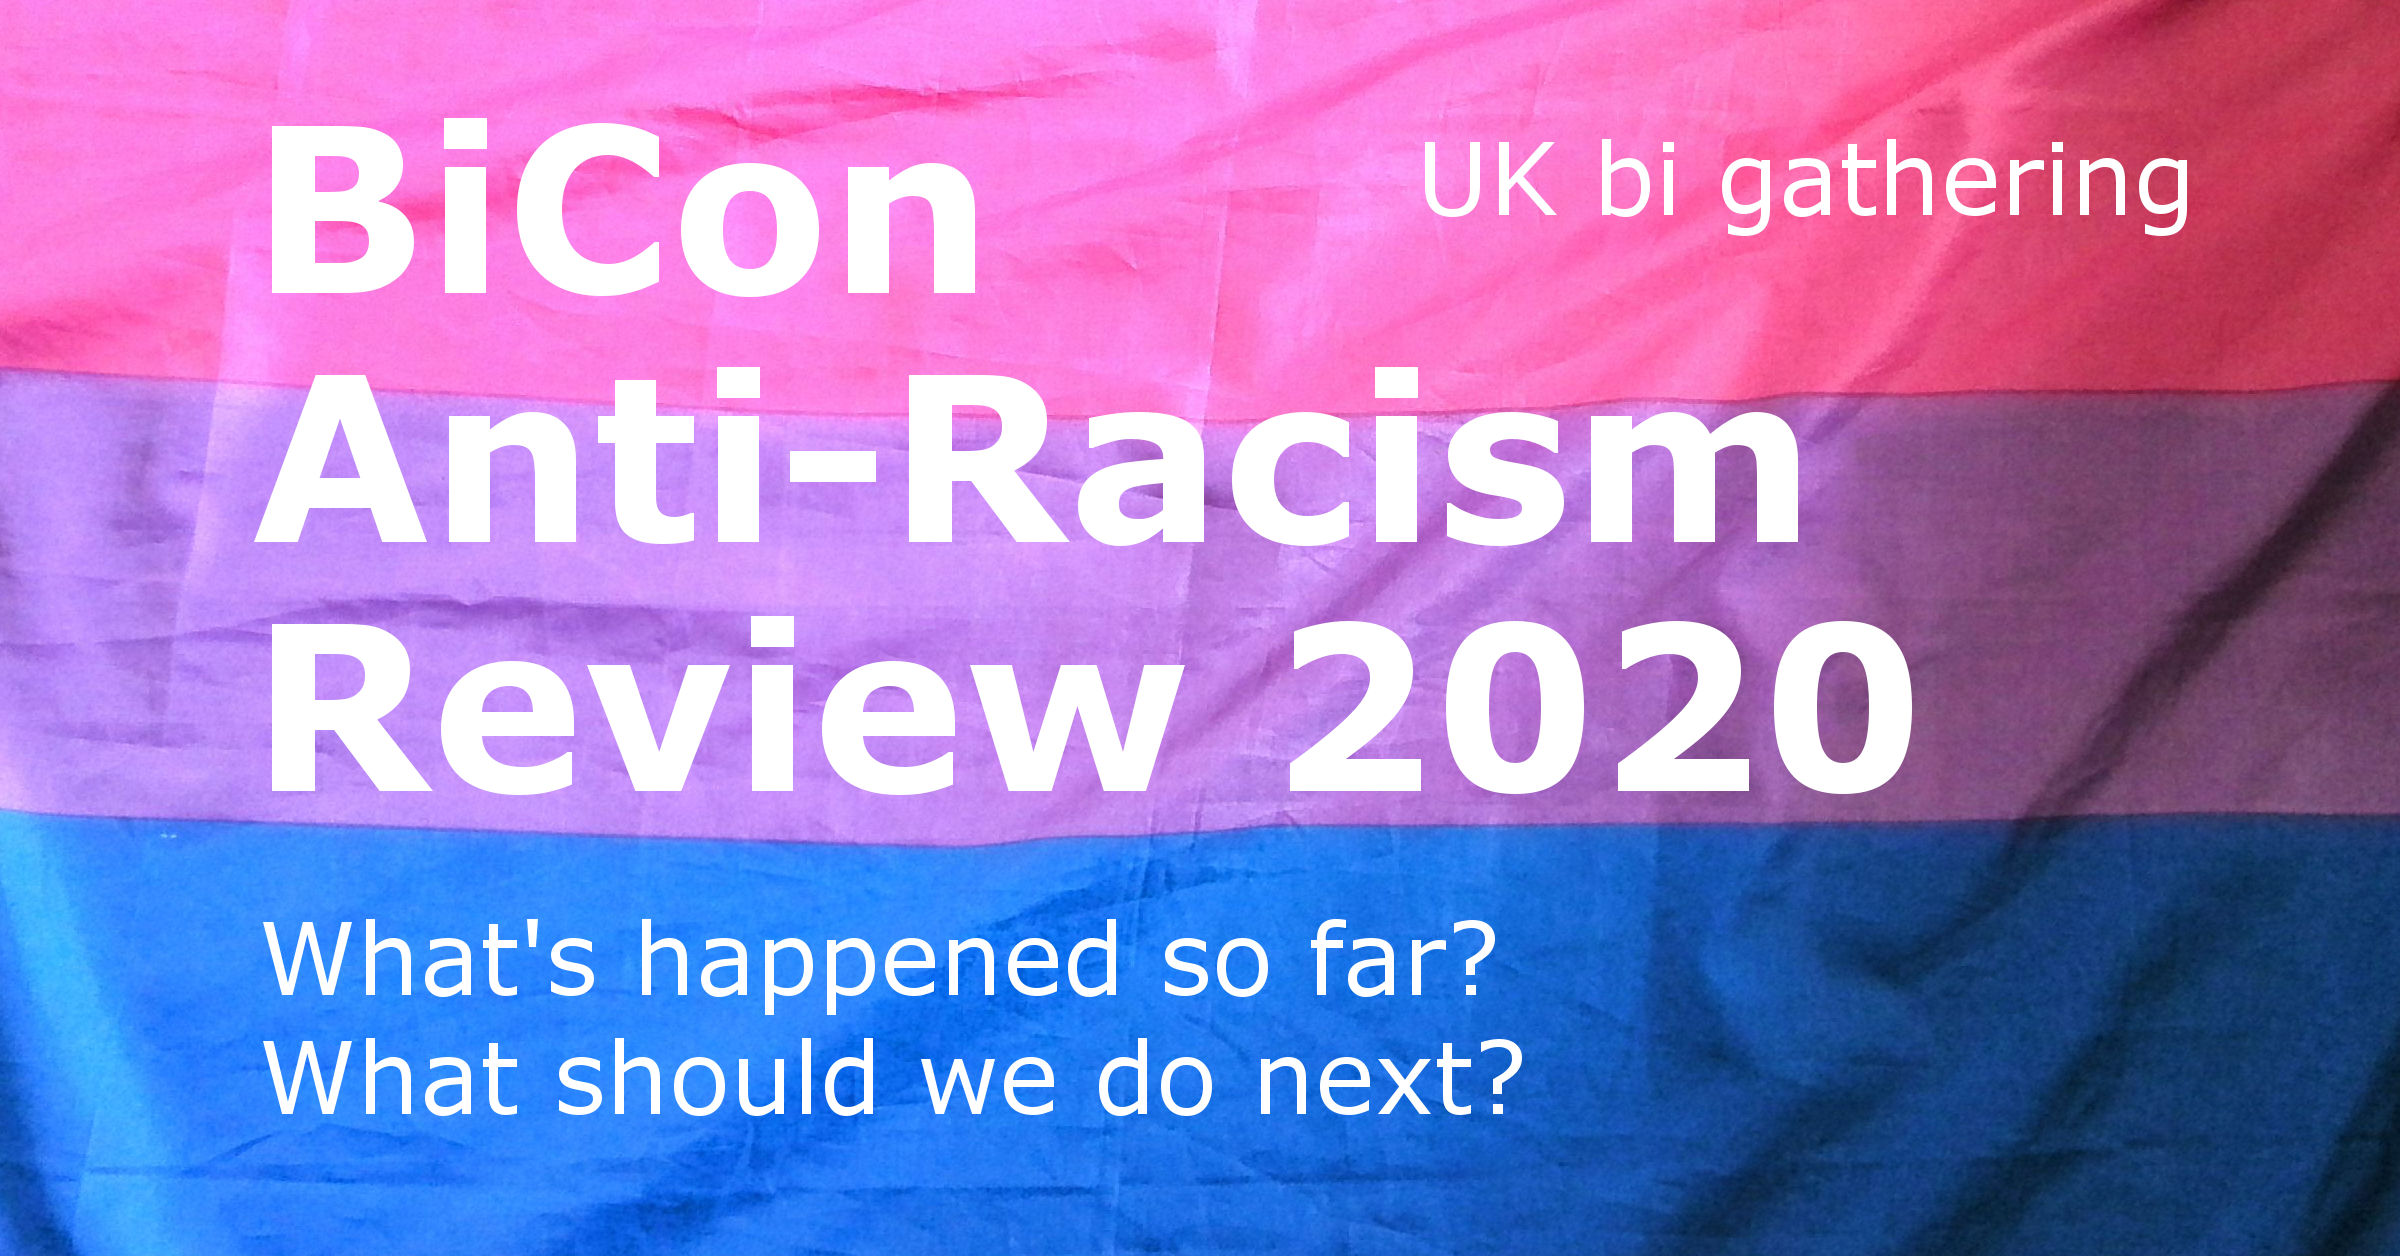 BiCon Anti-Racism Review 2020. (UK bi gathering.) What's happened so far? What should we do next?